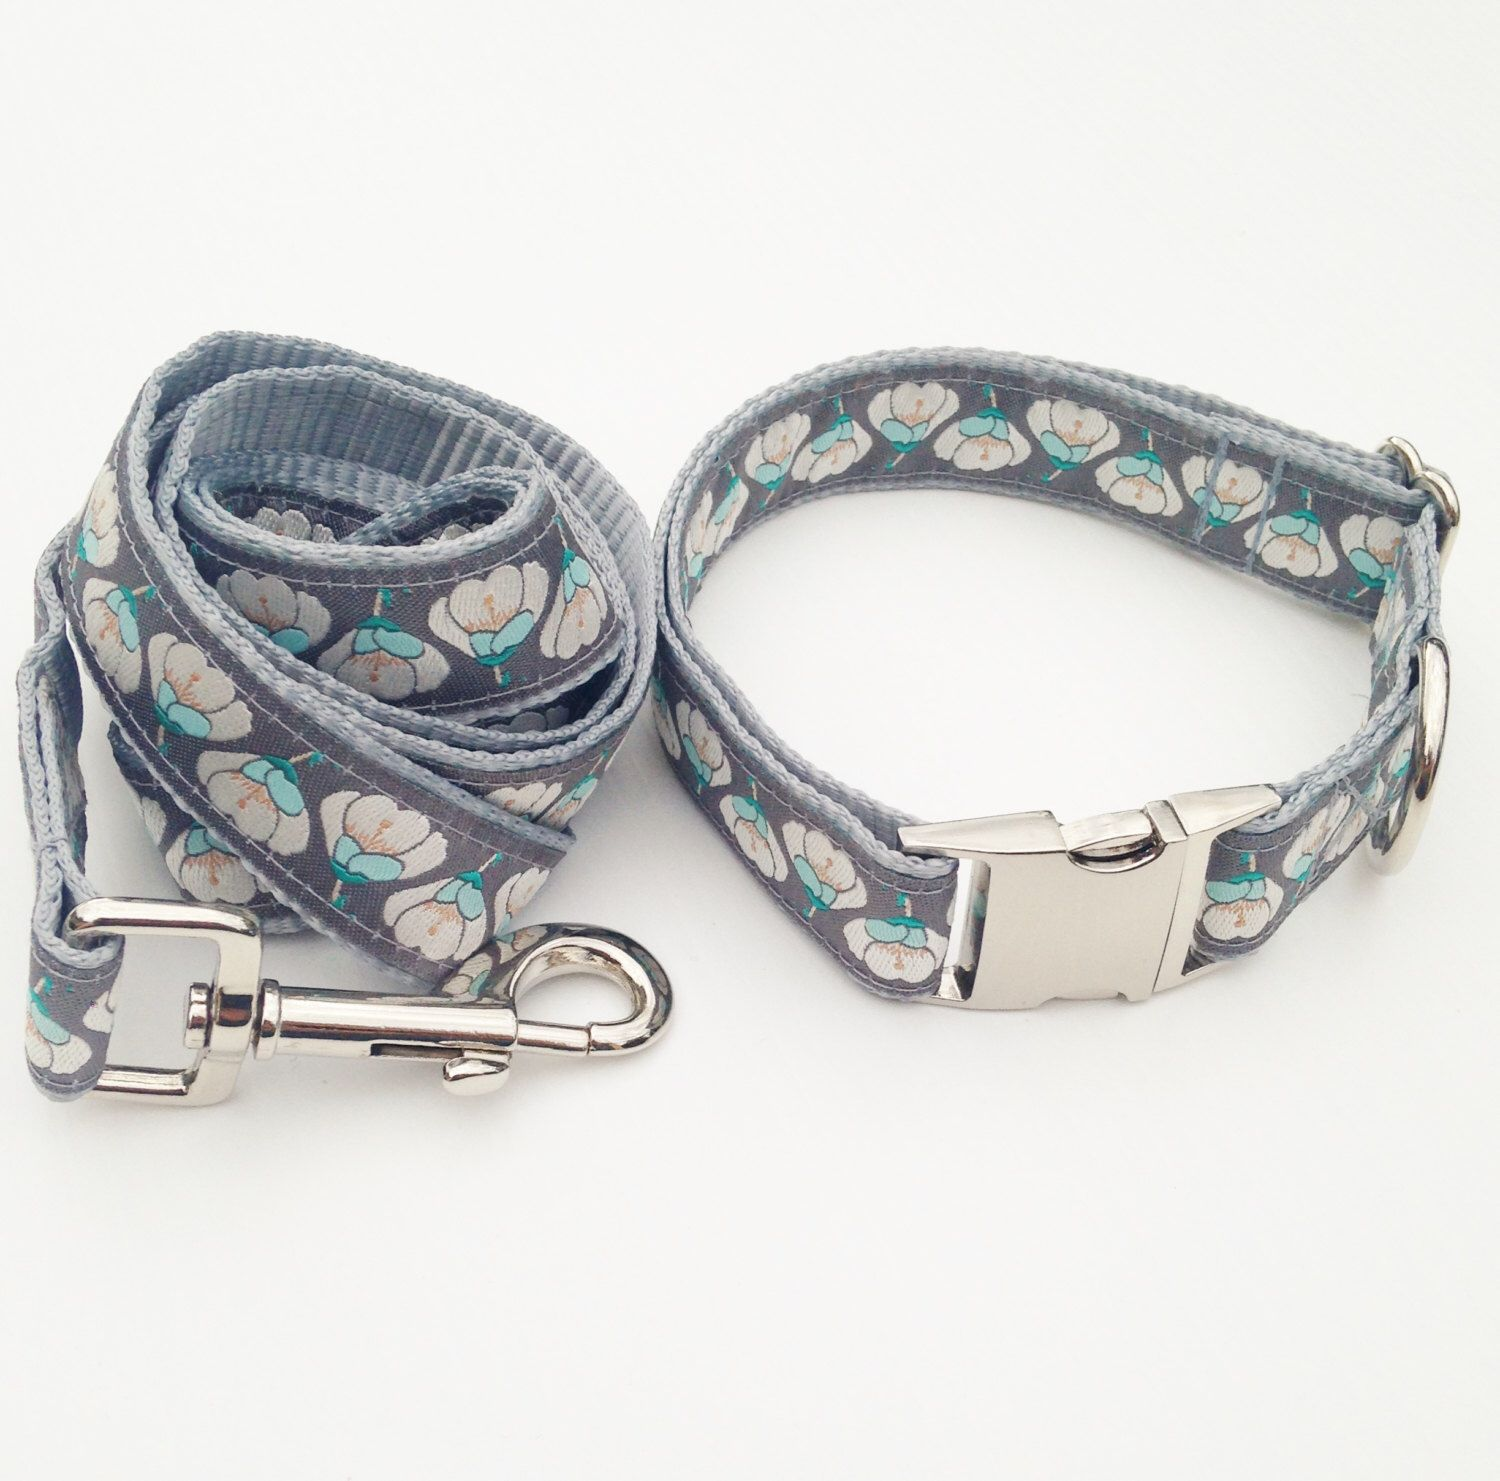 Beautiful Vintage Inspired Nesting Blooms Patterned Patterned Adjustable Dog Collar and Leash Set. by WillowDogDesigns on Etsy https://www.etsy.com/listing/251995869/beautiful-vintage-inspired-nesting